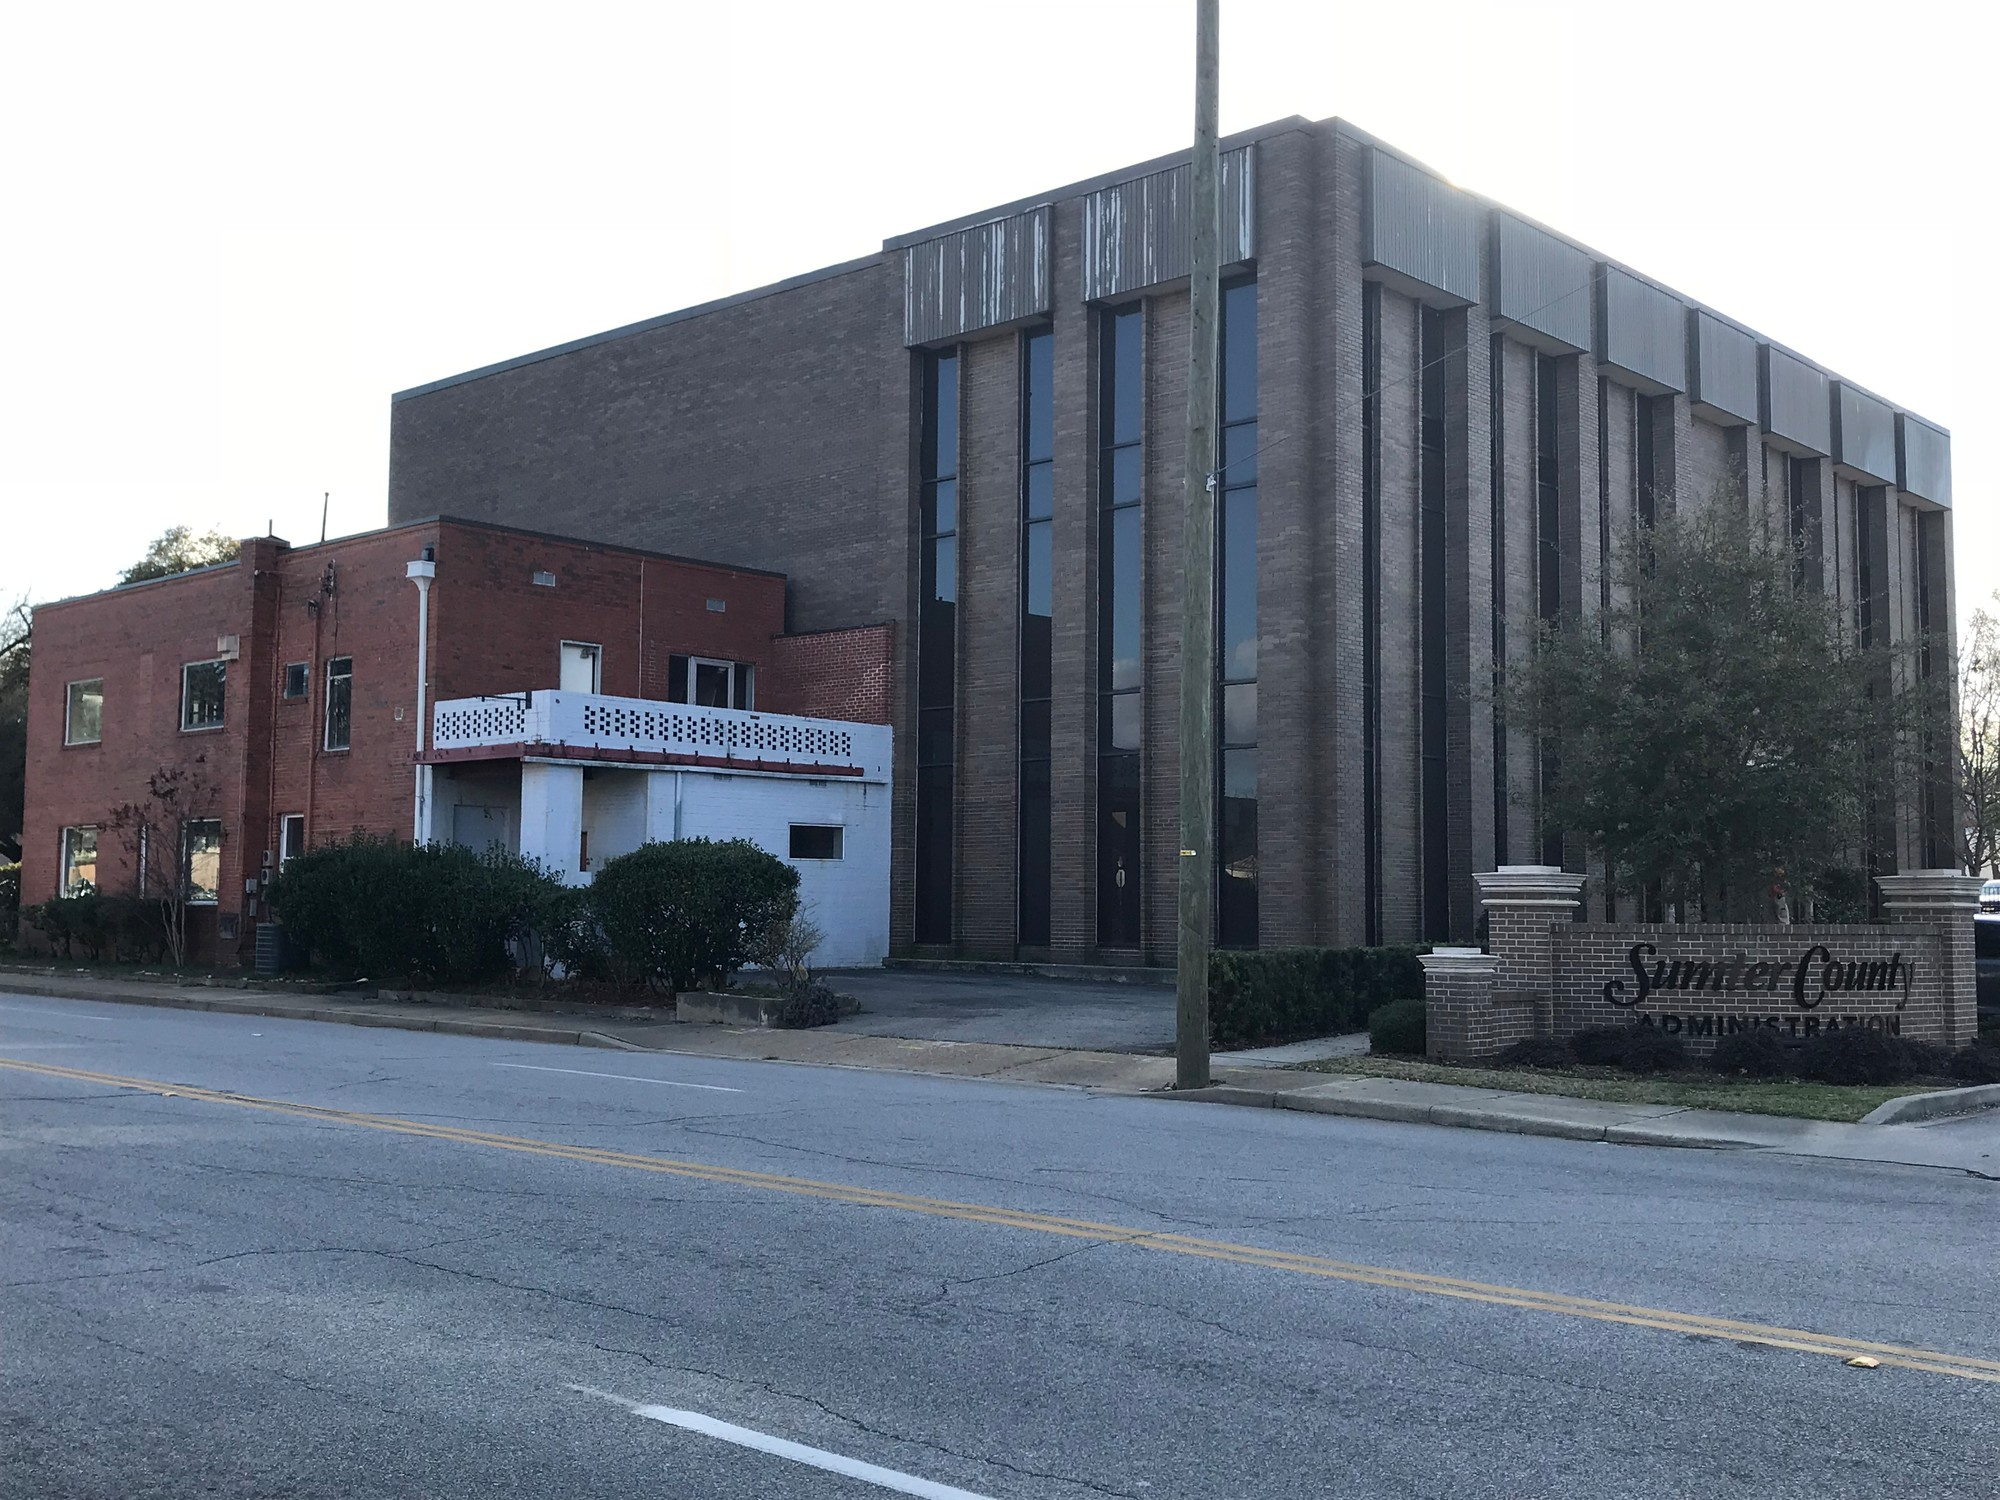 The vacant, red brick building next to the Sumter County Administration Building will be demolished and a building will provide public access to county agencies will be constructed in its place.